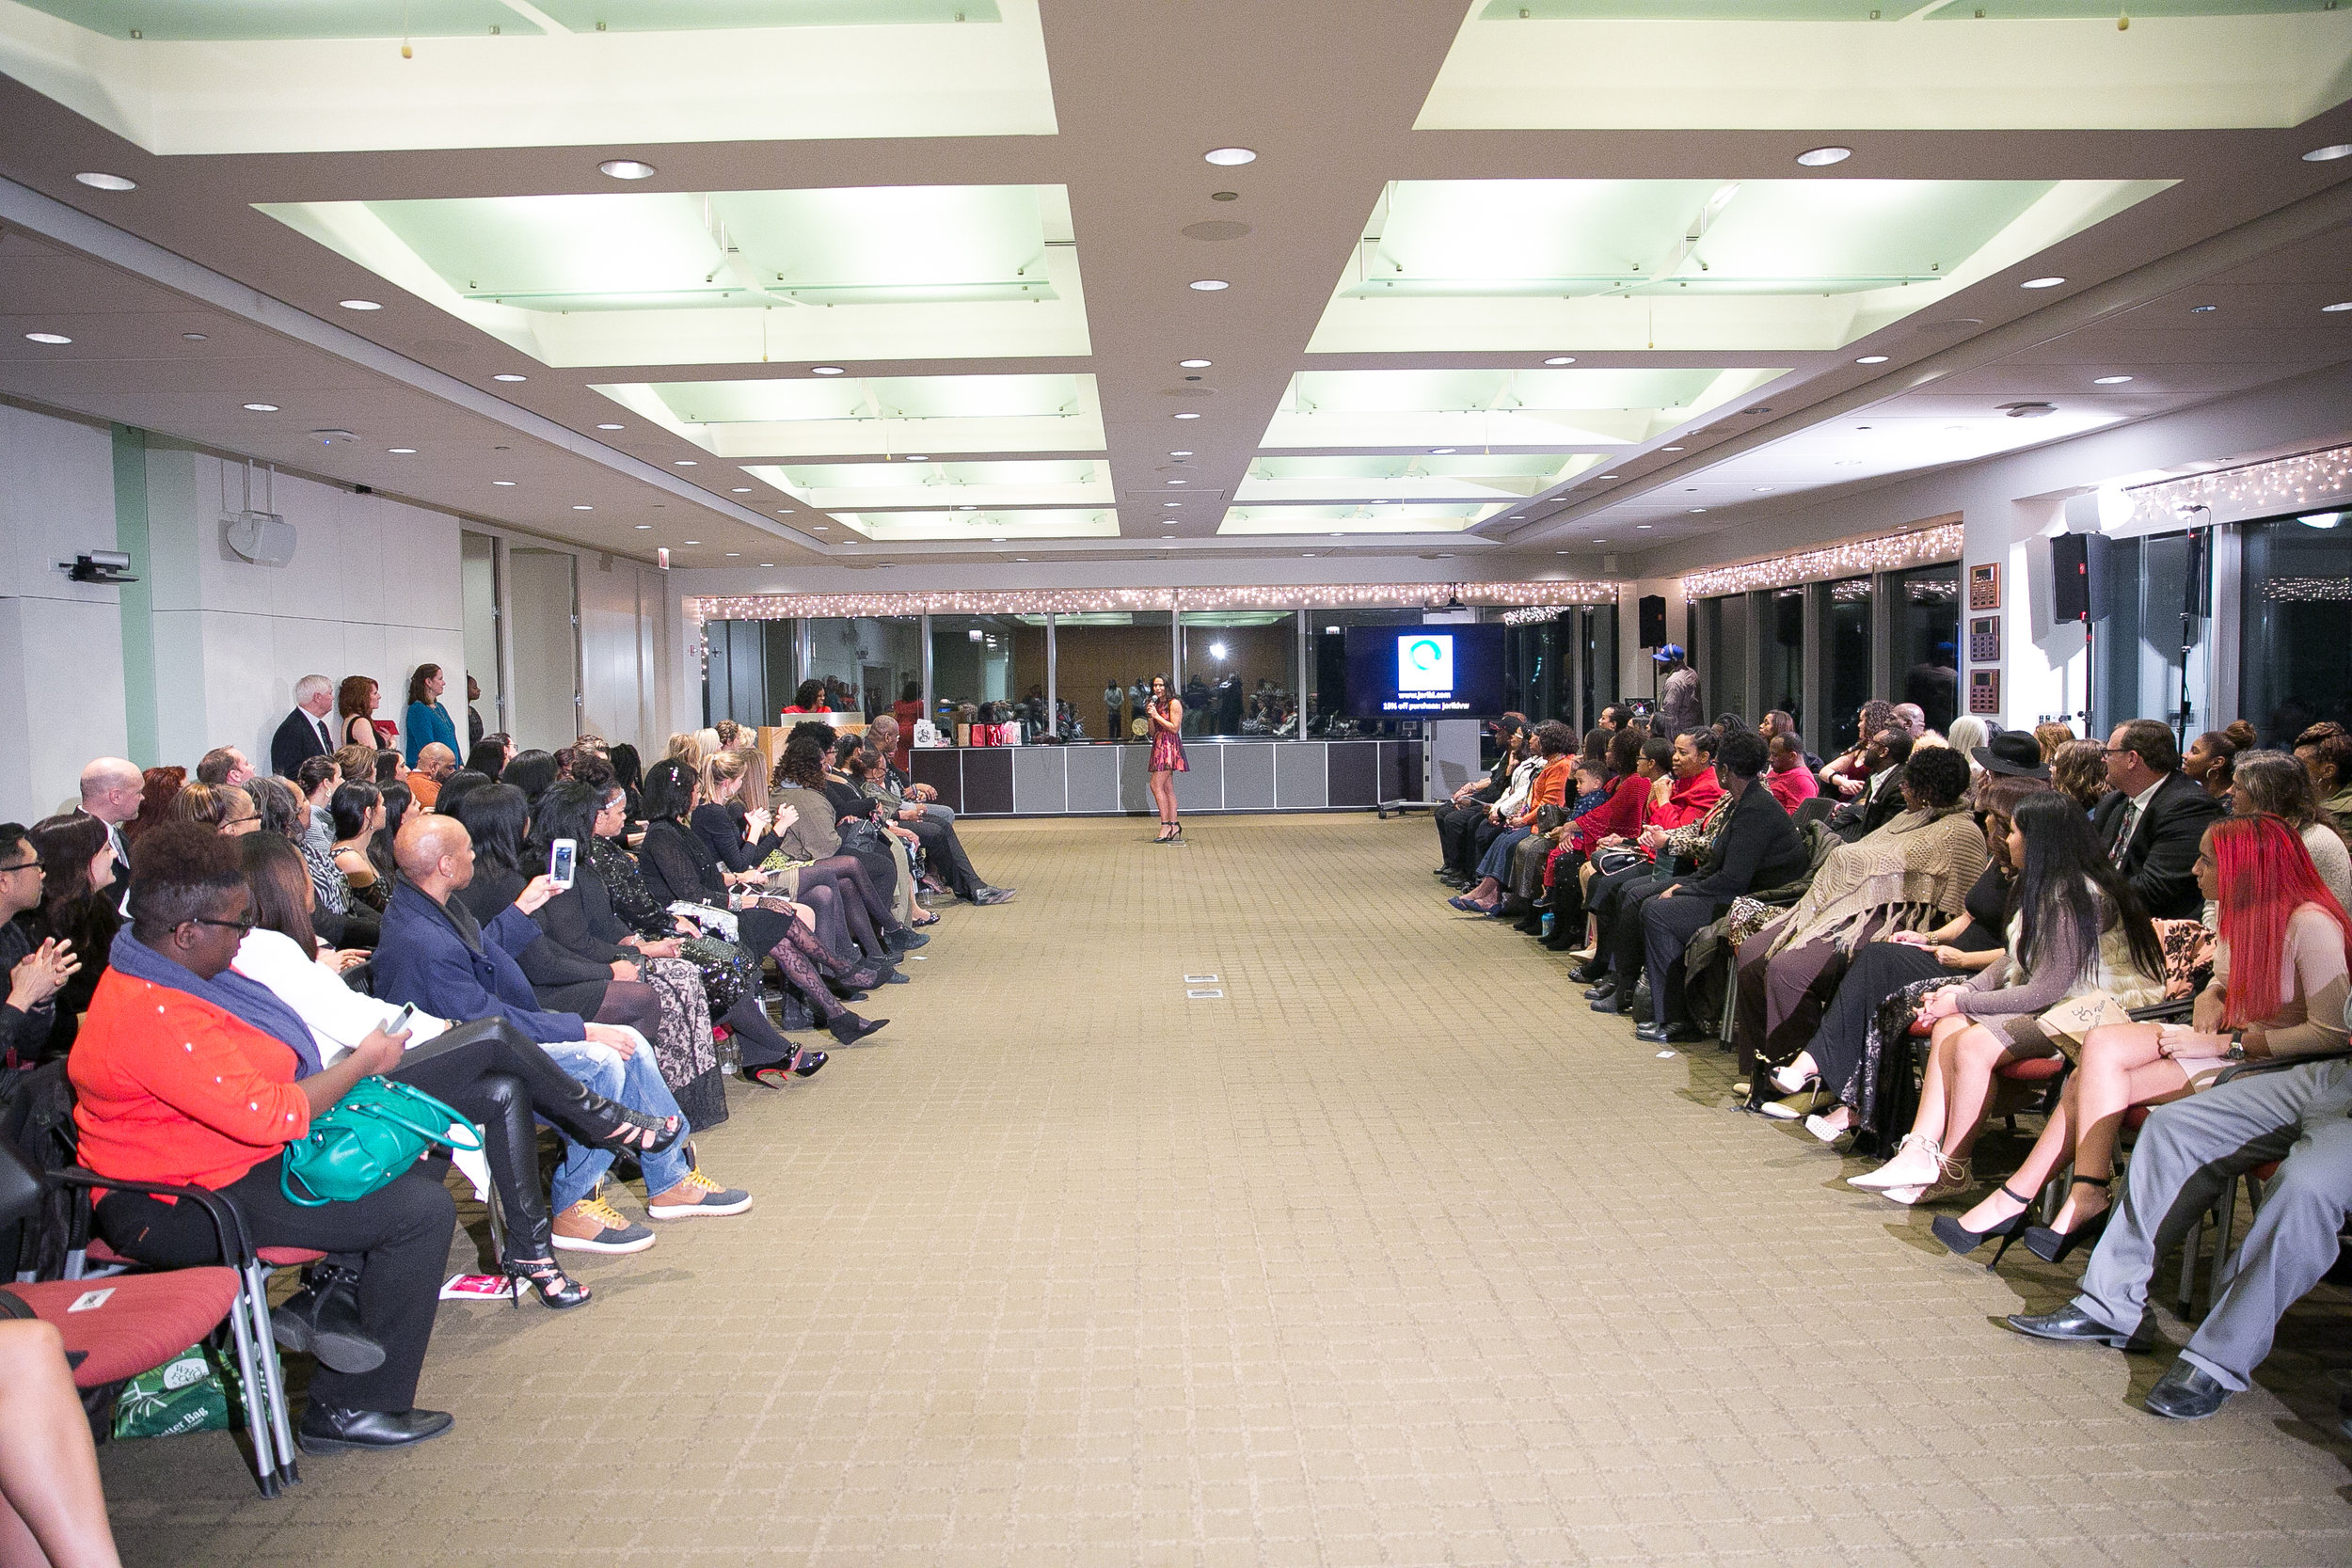 The full audience. Proceeds from tickets benefited Traffick Free.